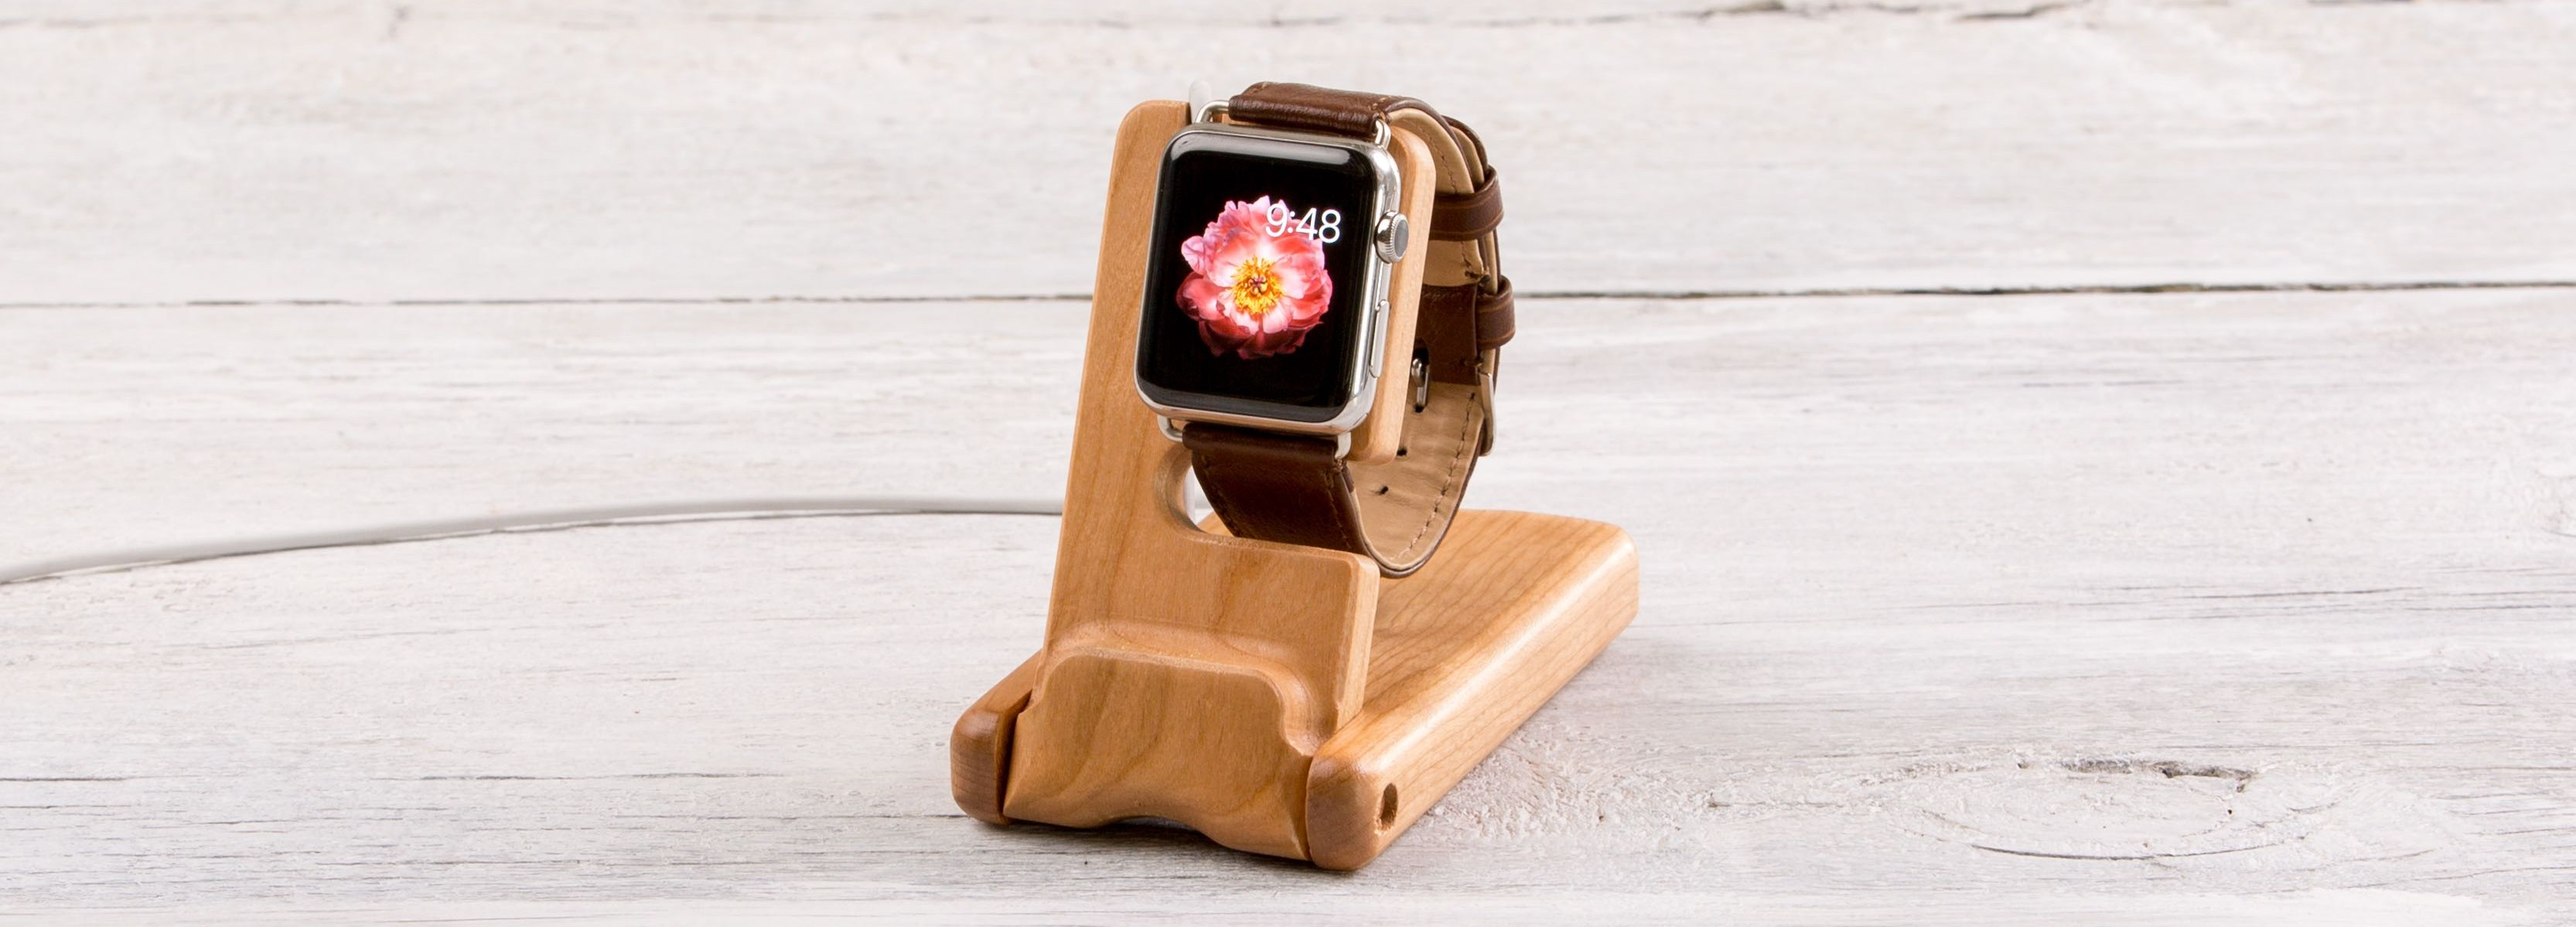 Poop and the Apple Watch Bands